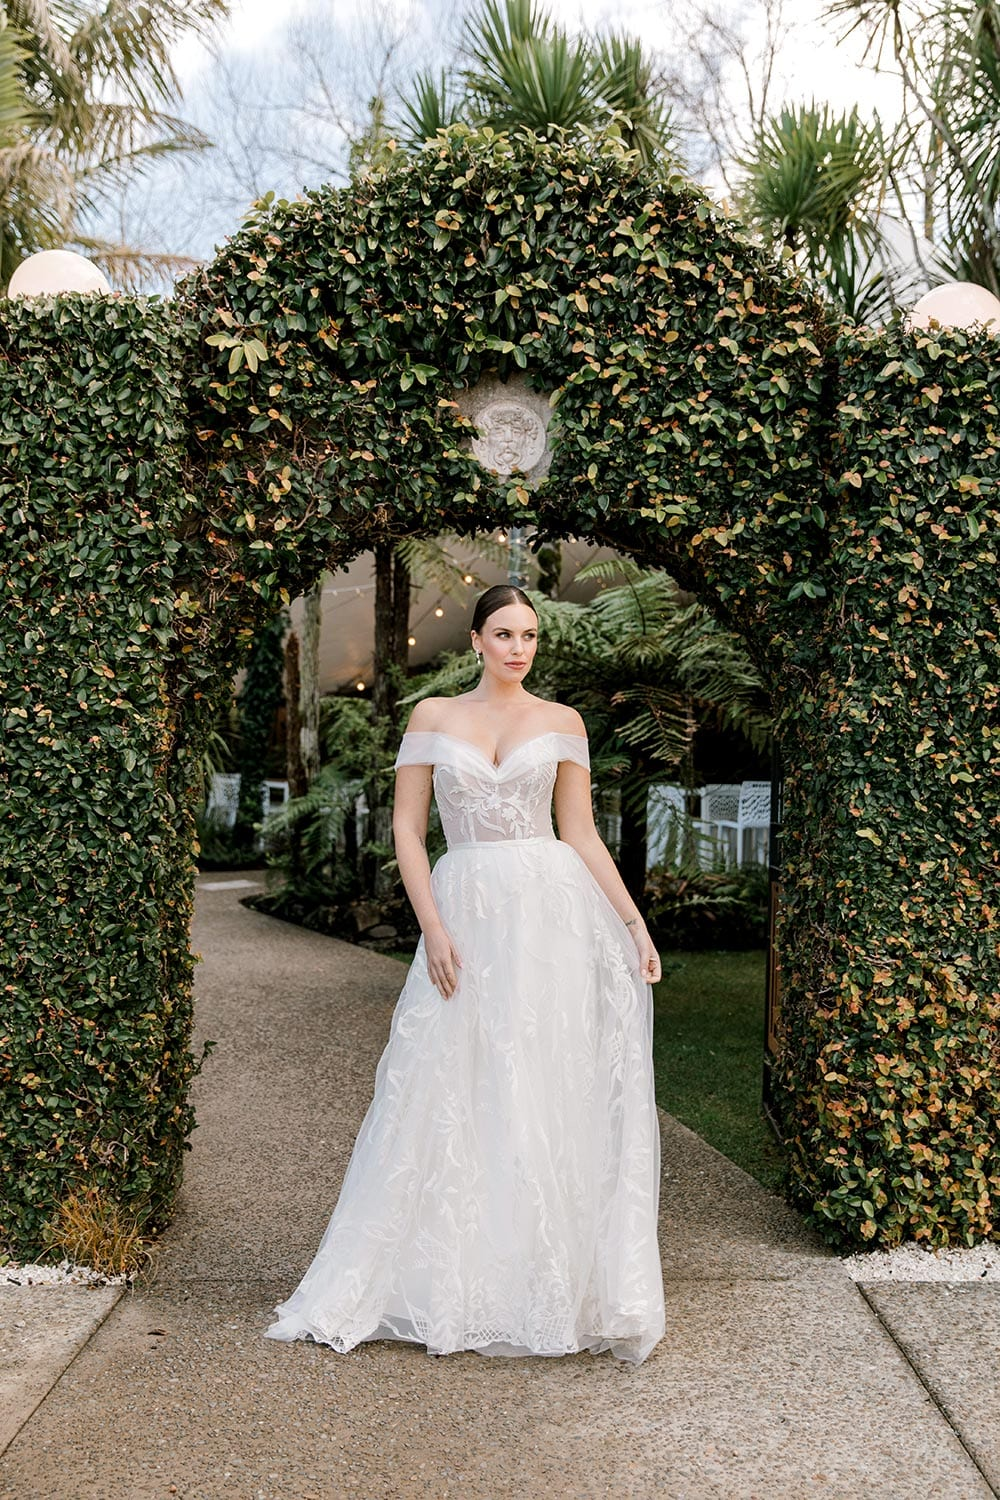 Zoe wedding dress by Vinka Design - a romantic & dreamy off-shoulder gown with a structured, boned bodice, a full lace & tulle skirt. Semi-sheer bodice with tulle off-shoulder detailing and satin belt. Worn in garden archway, portrait.